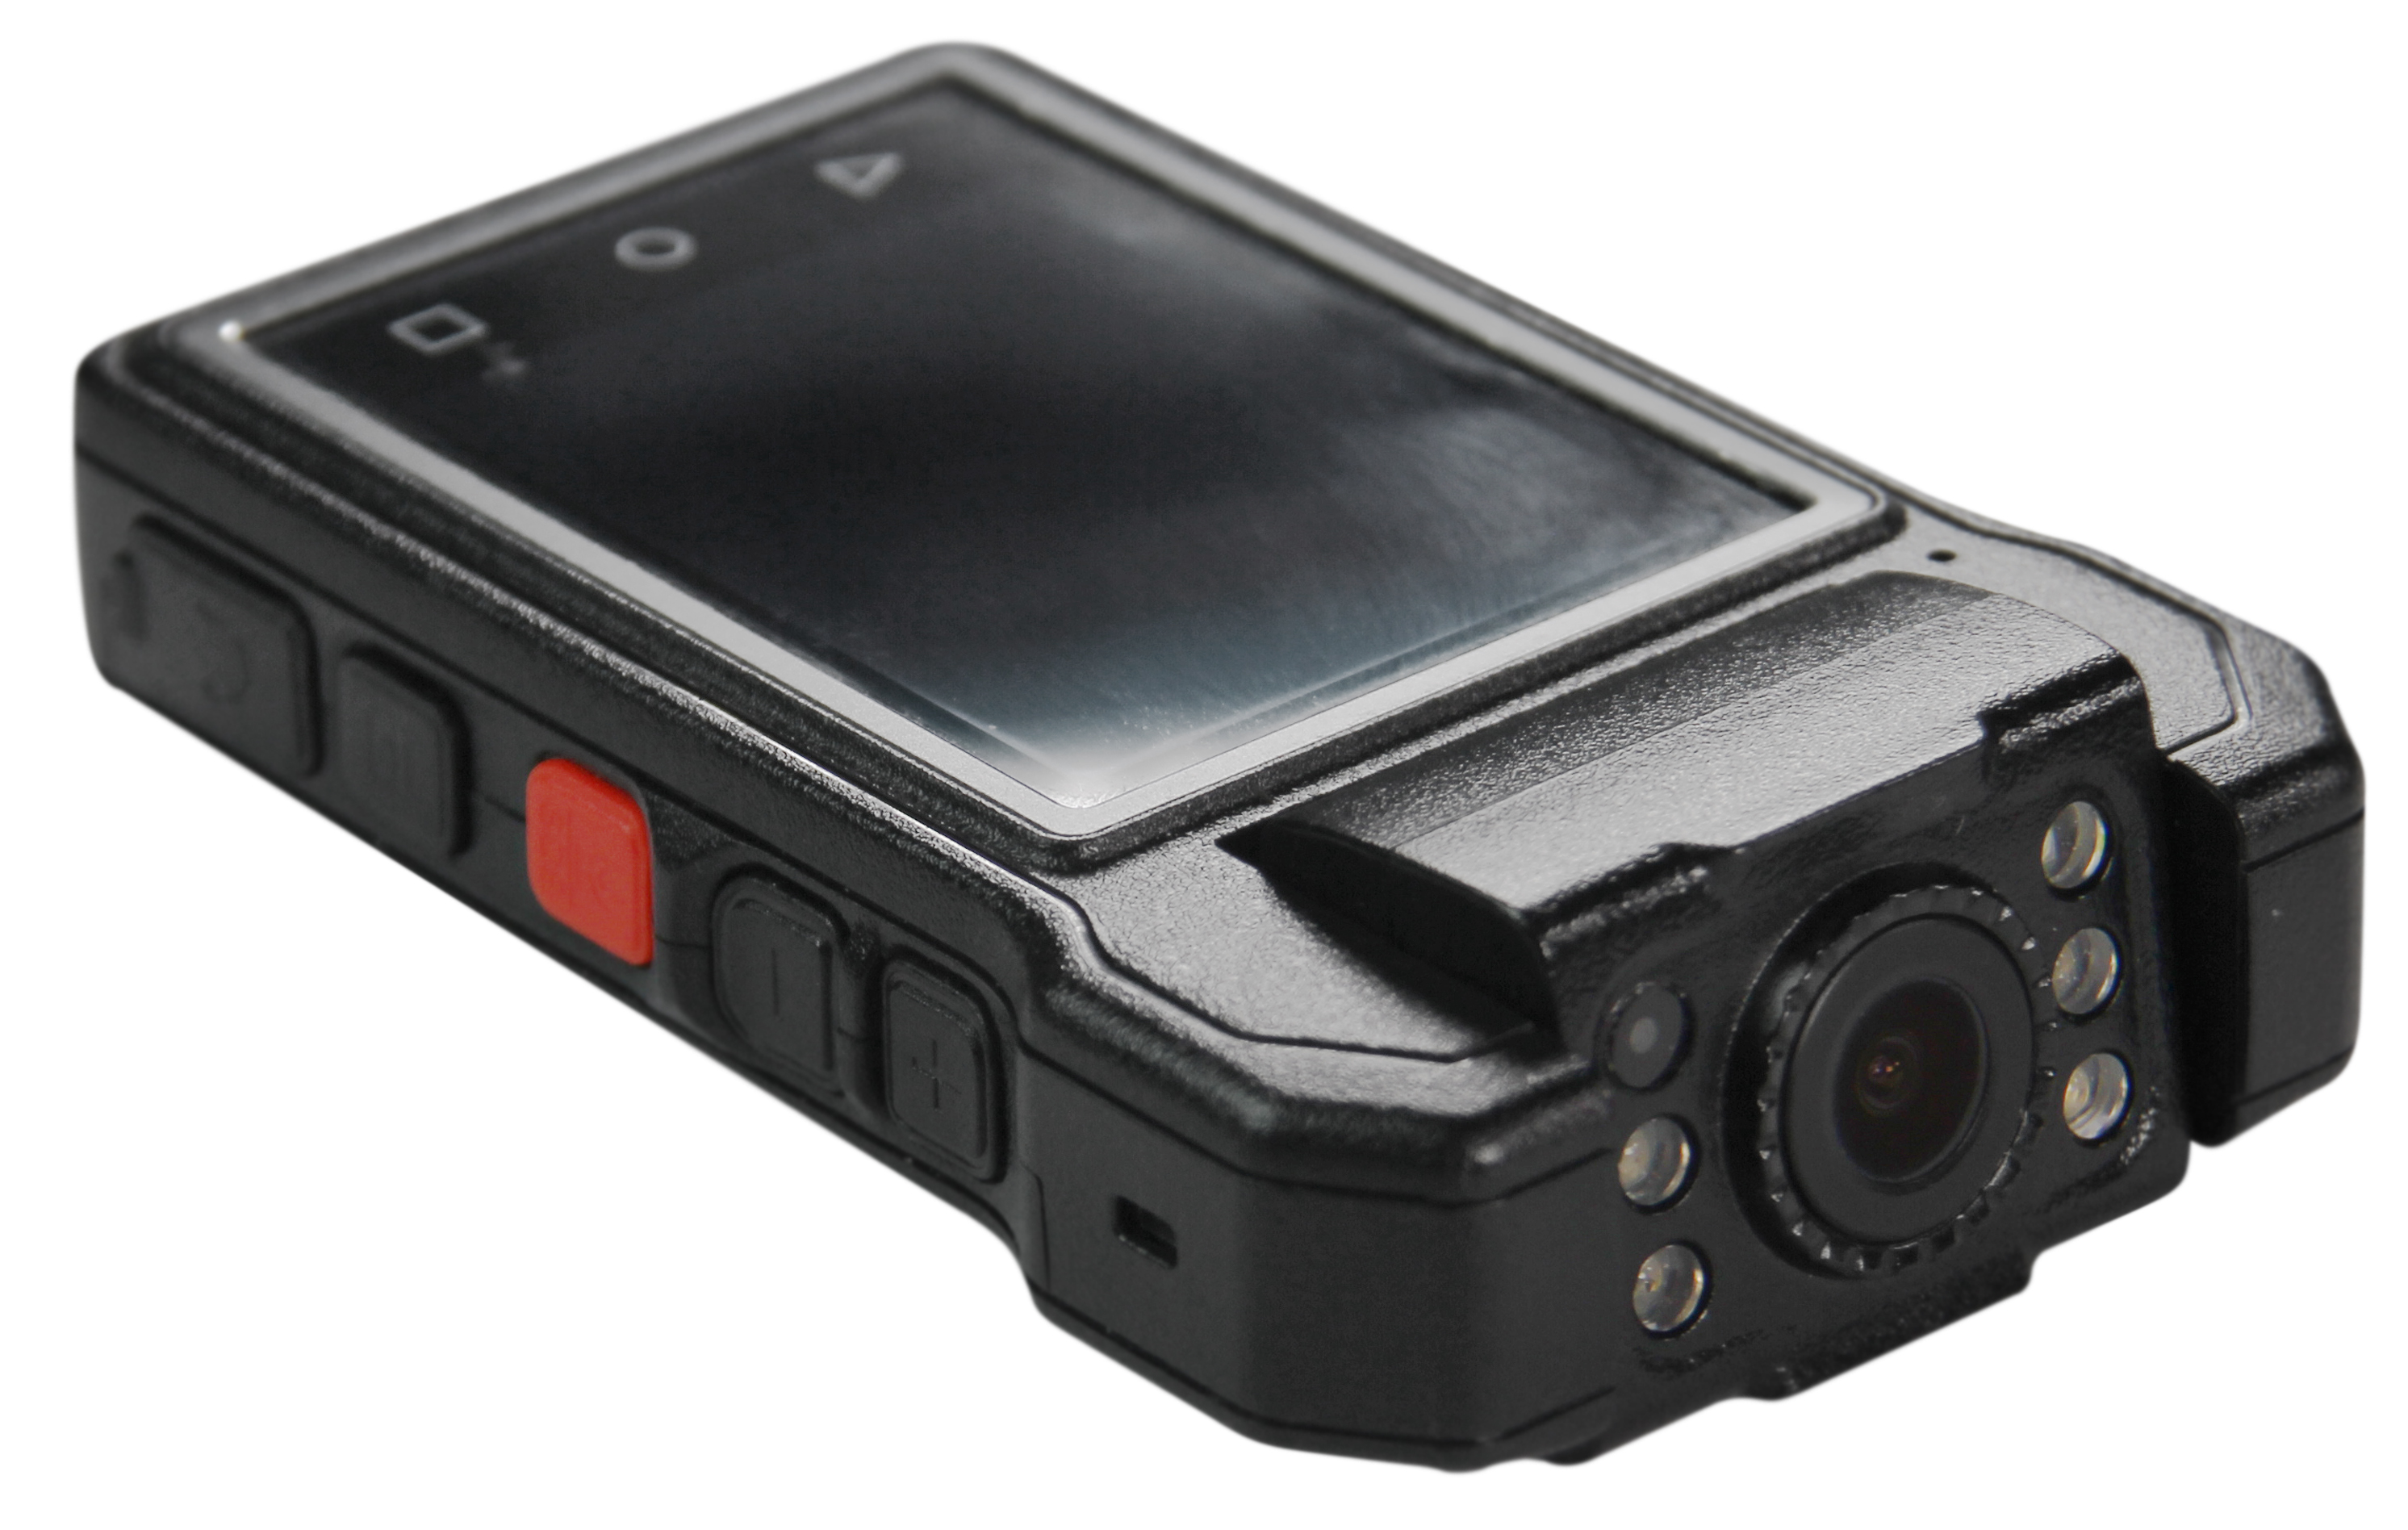 wolfcom x1 police body camera rotatable camera head